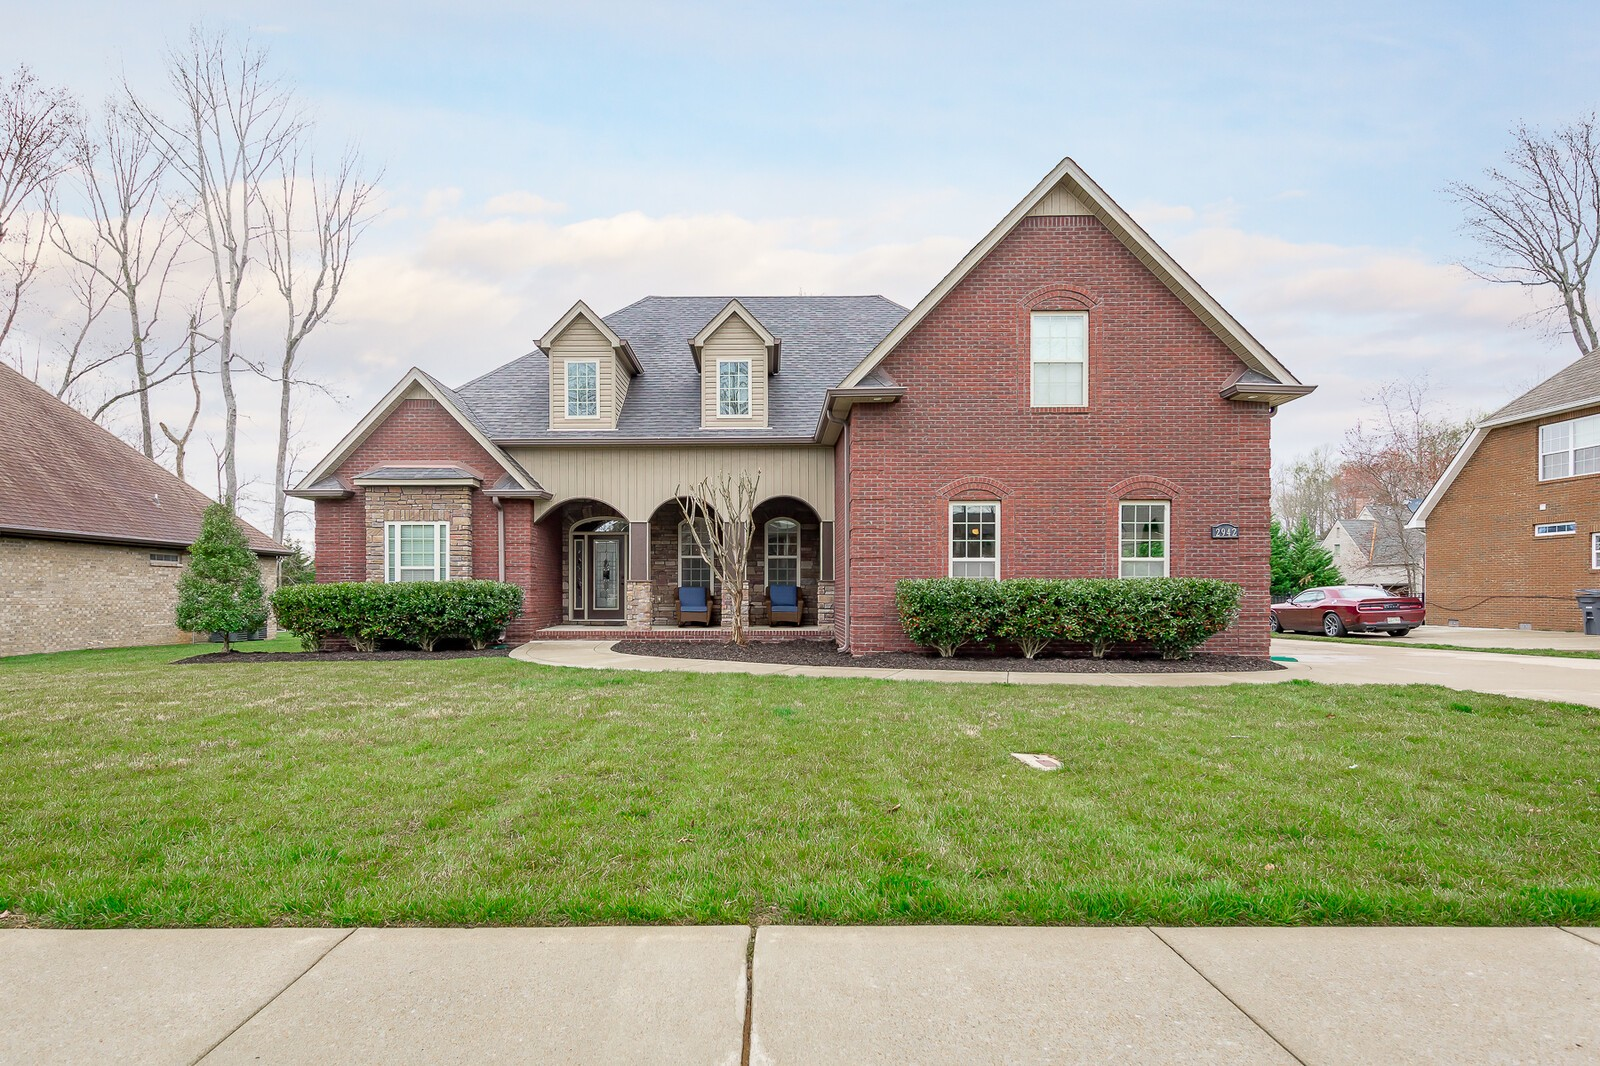 2942 Prince Dr Property Photo - Clarksville, TN real estate listing